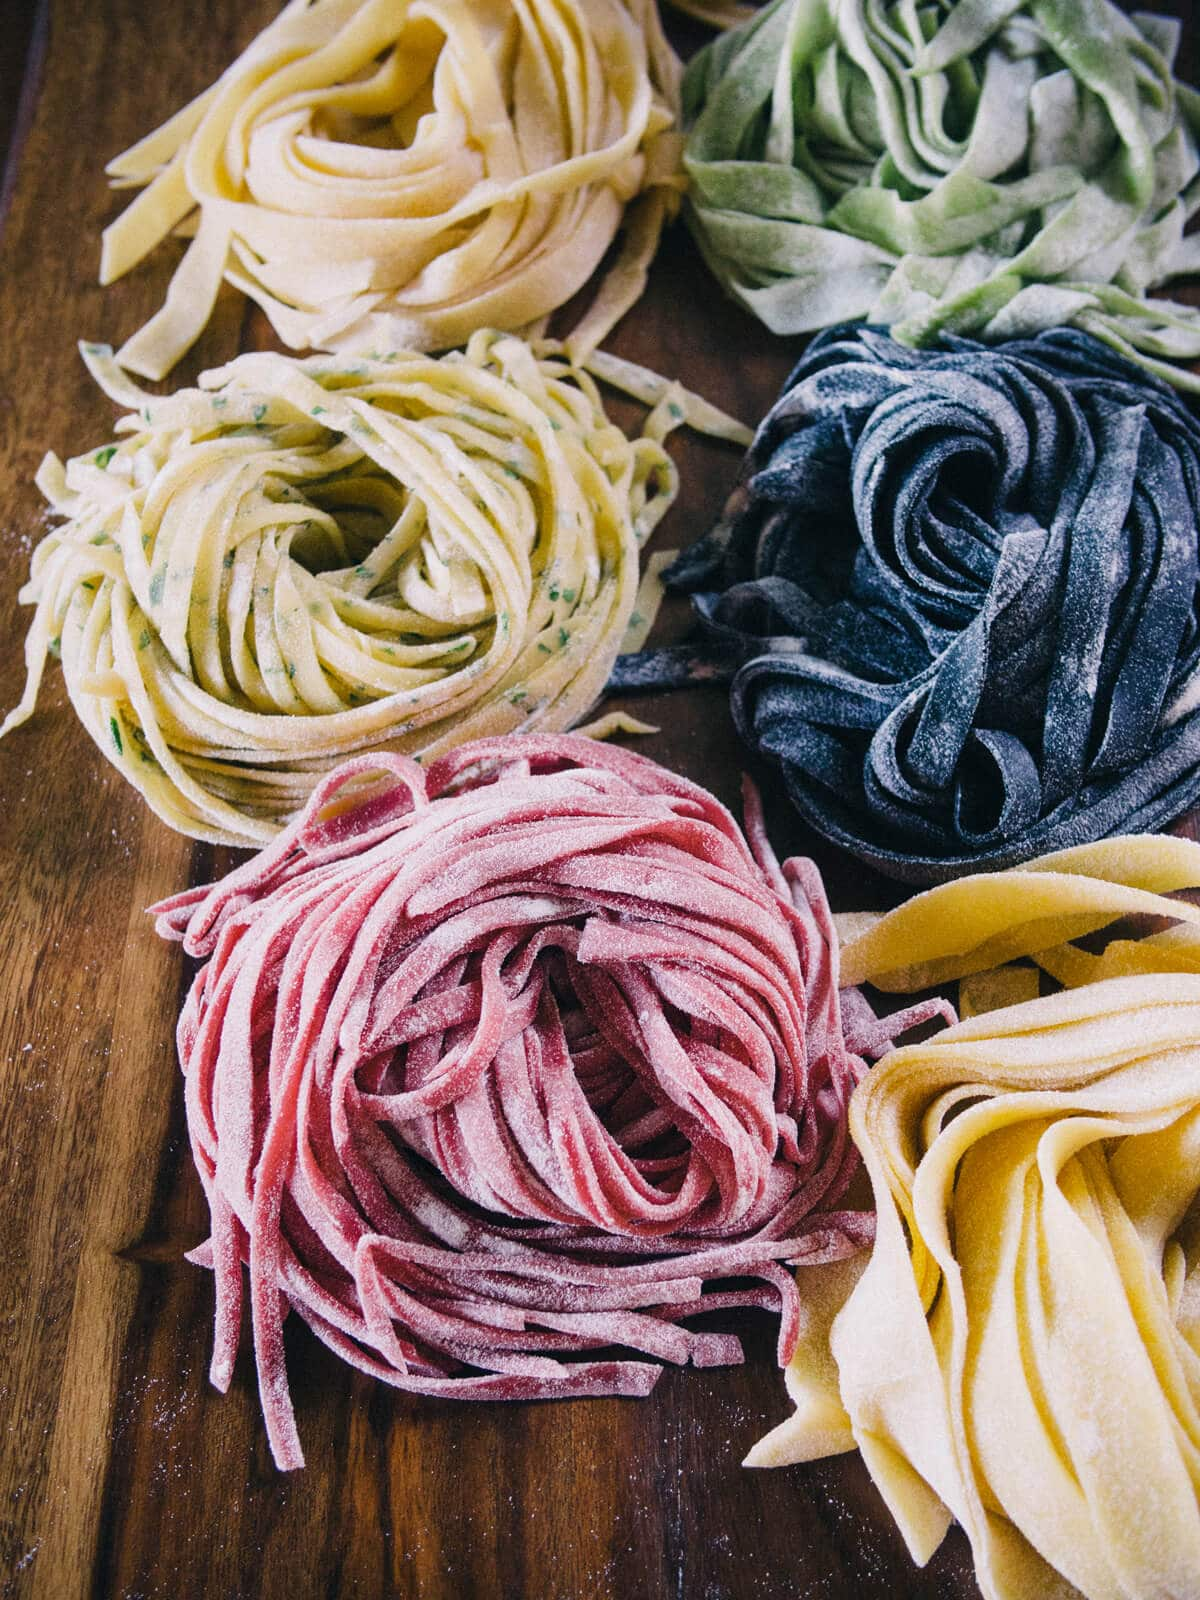 Fresh homemade pasta (using what you already have in the kitchen)